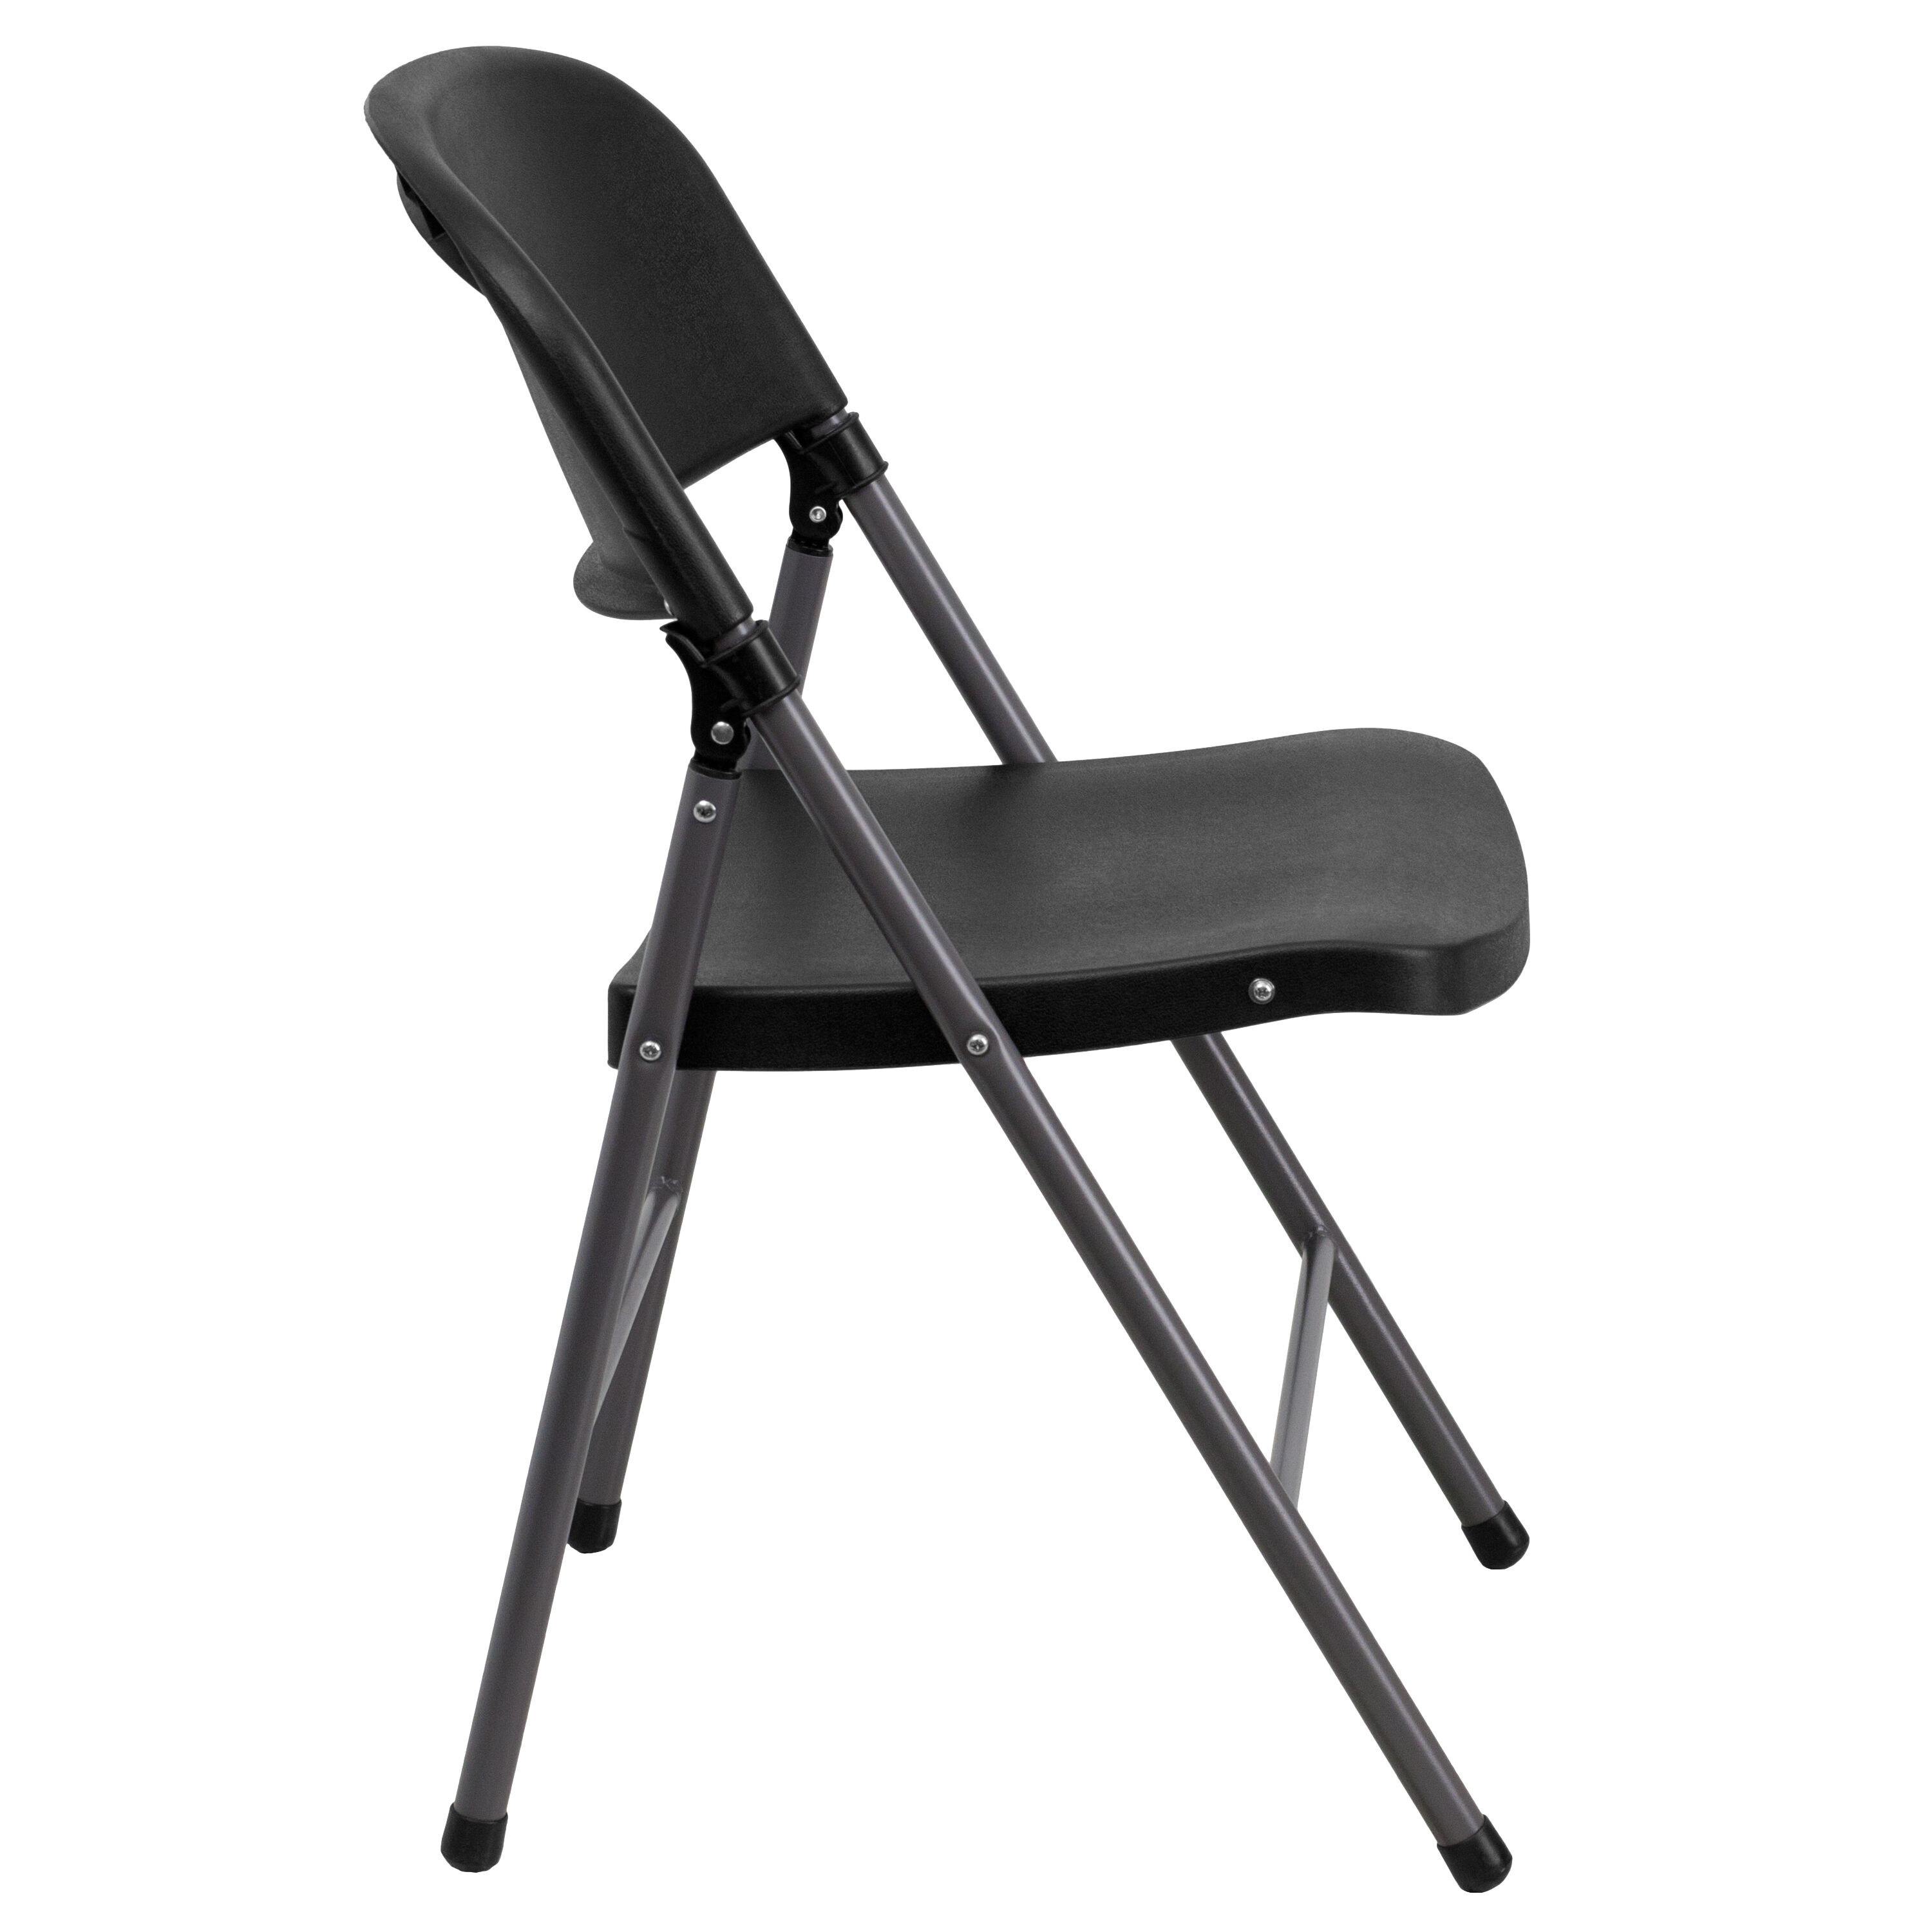 Genial Capacity Black Plastic Folding Chair With Charcoal Frame Is On ...